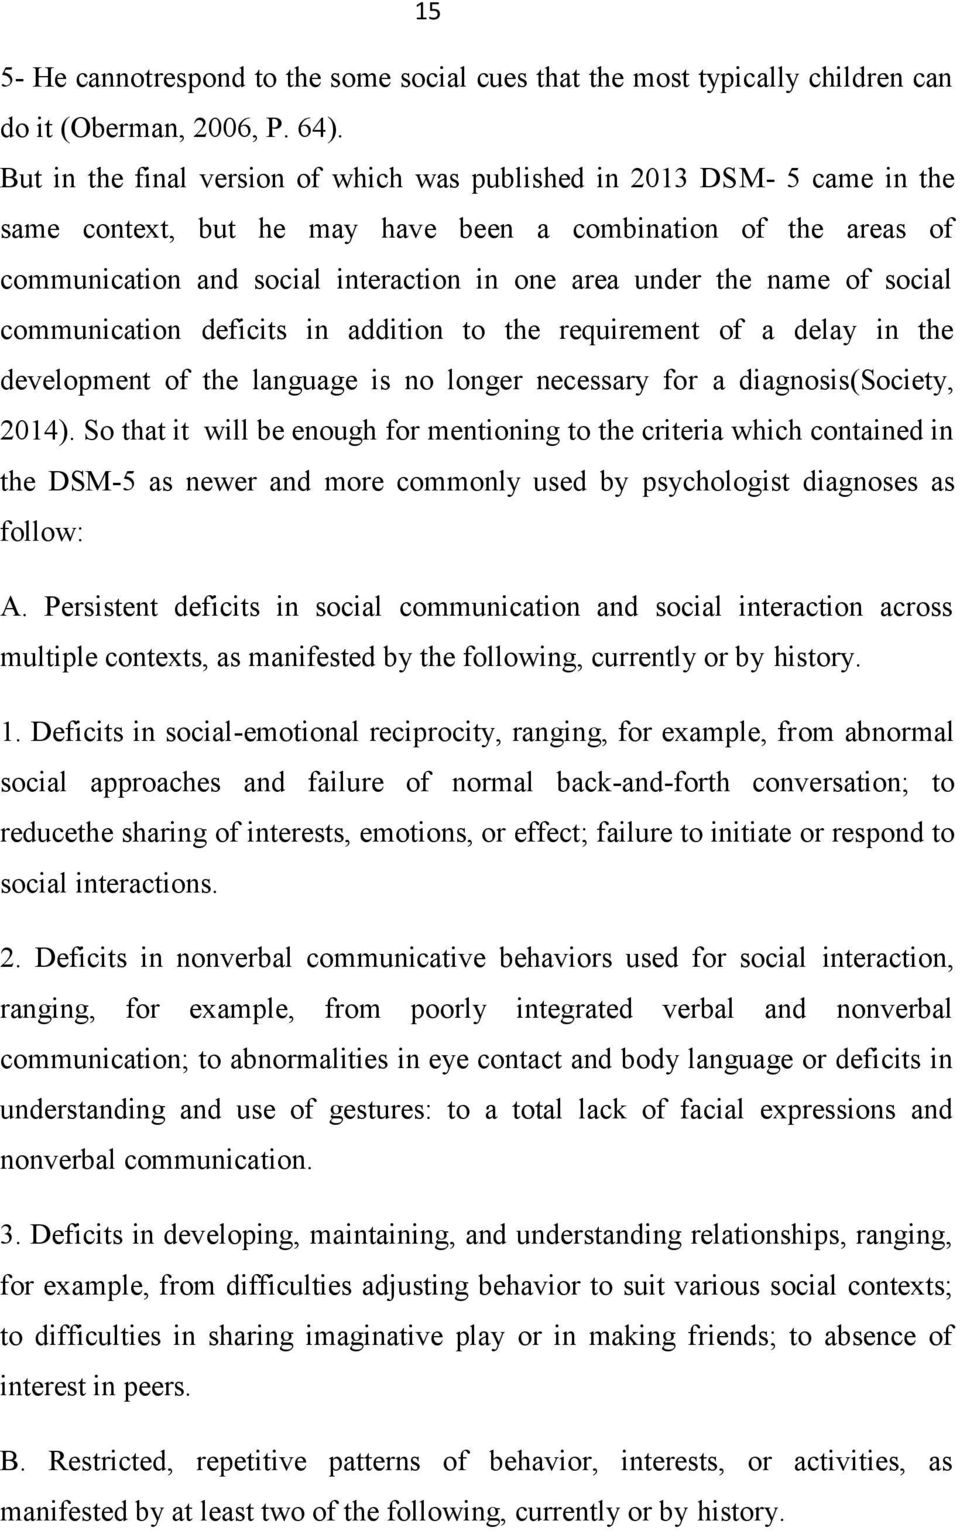 name of social communication deficits in addition to the requirement of a delay in the development of the language is no longer necessary for a diagnosis(society, 2014).